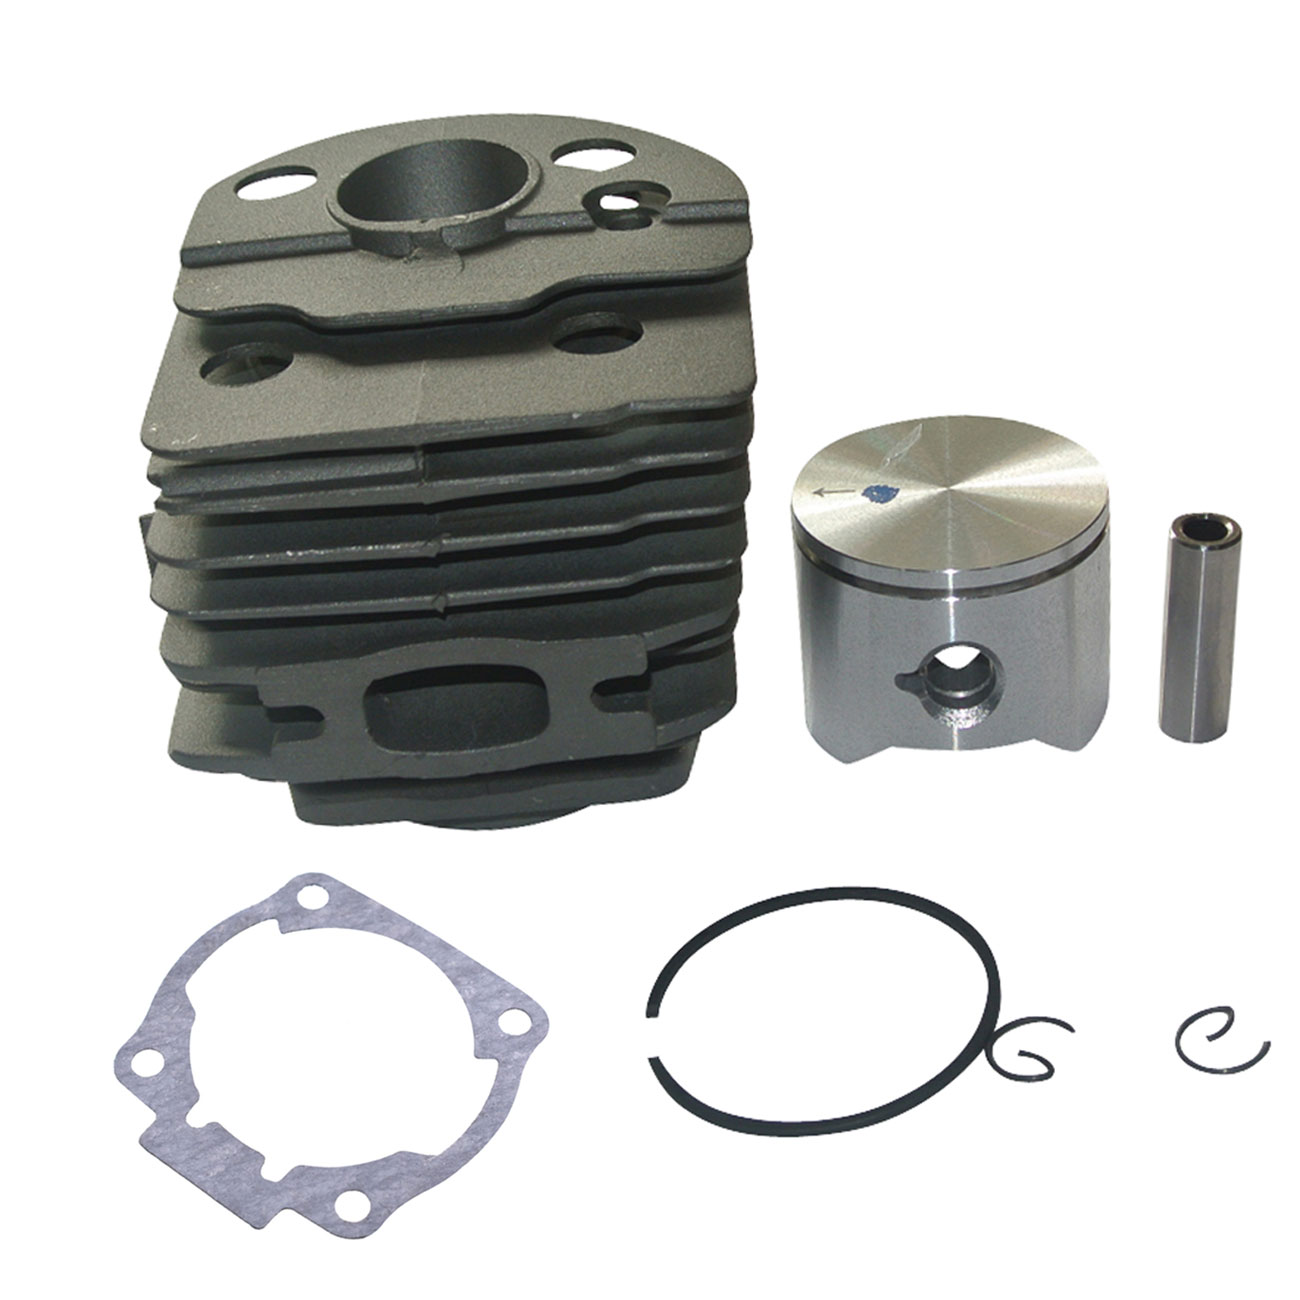 45mm Engine Motor Cylinder Piston Rings Kit For Husqvarna 55 51 50 Chainsaw